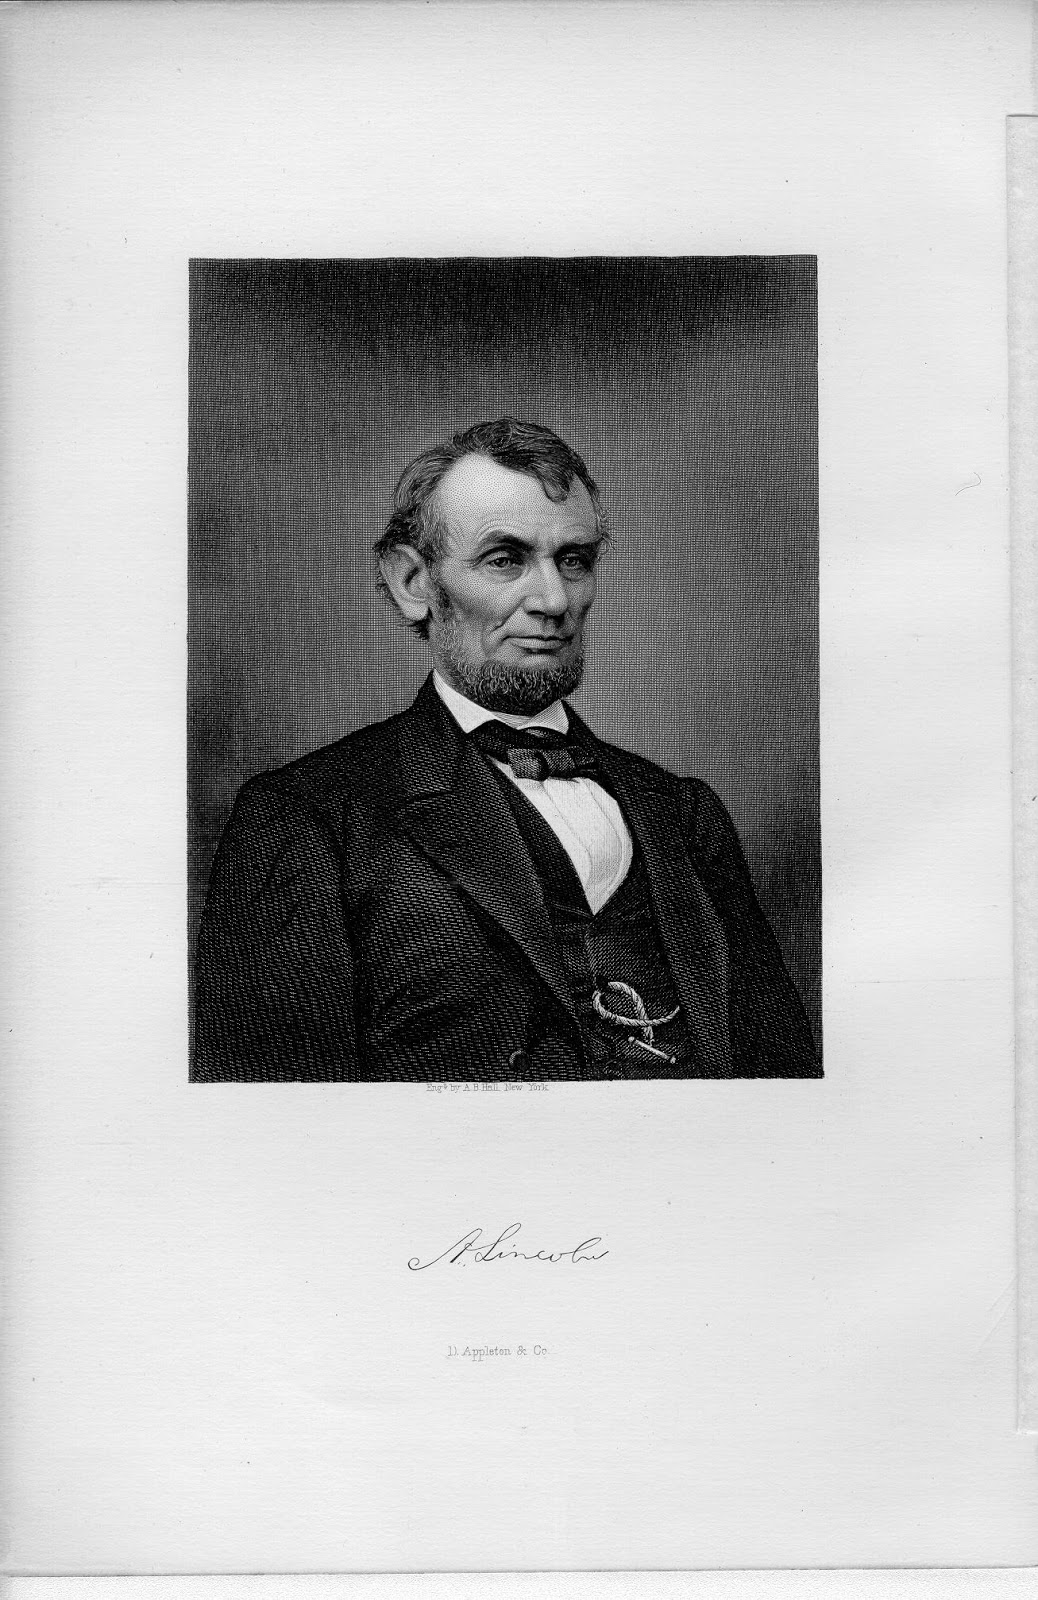 the powerful presidency of abraham lincoln Abraham lincoln (february 12, 1809 - april 15, 1865) was an american statesman and lawyer who served as the 16th president of the united states from march 1861 until his assassination in april.